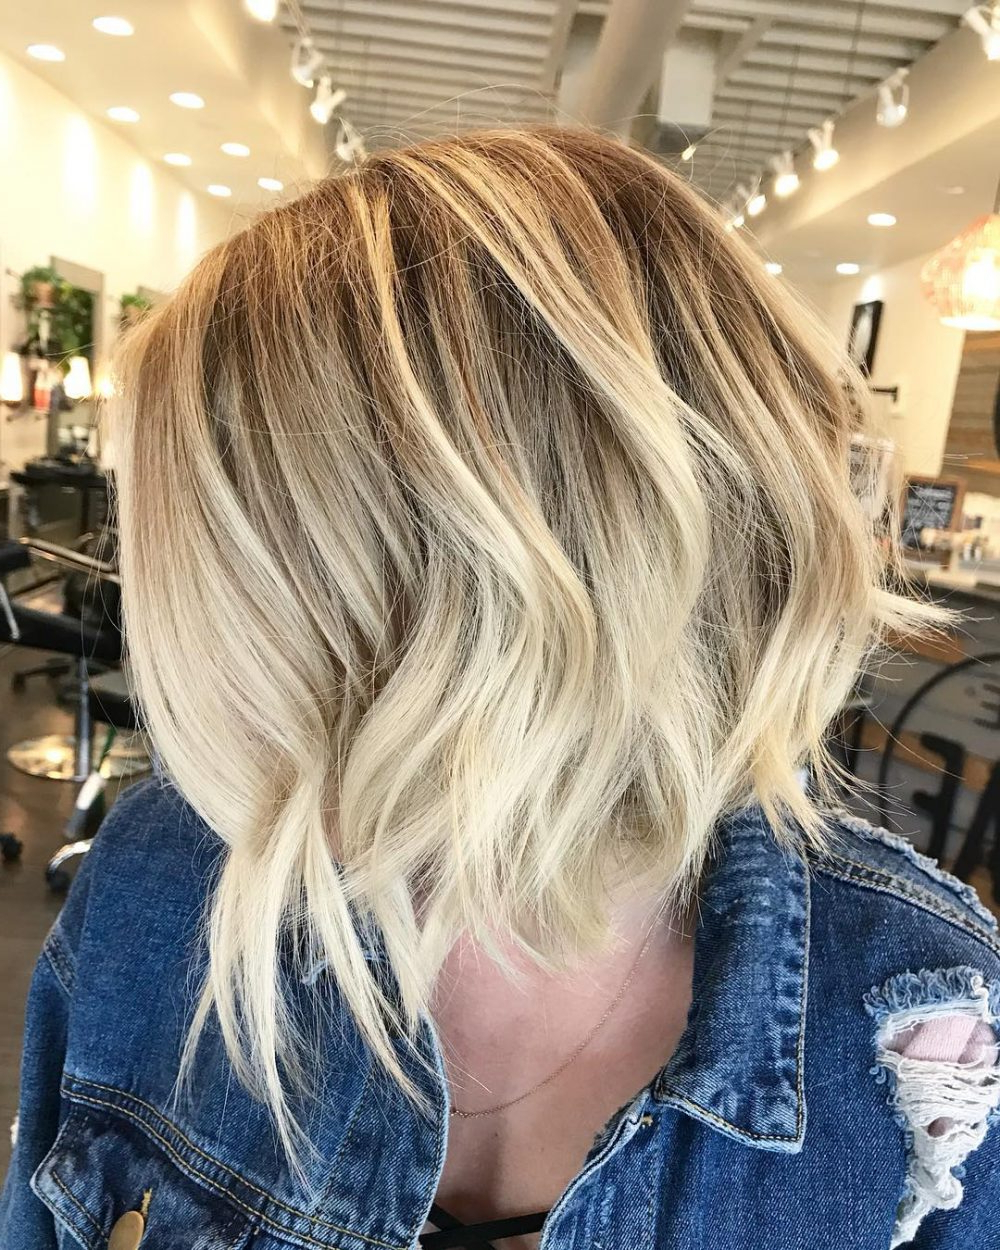 34 Best Choppy Layered Hairstyles (that Will Flatter Anyone) For Razored Two Layer Bob Hairstyles For Thick Hair (View 13 of 20)